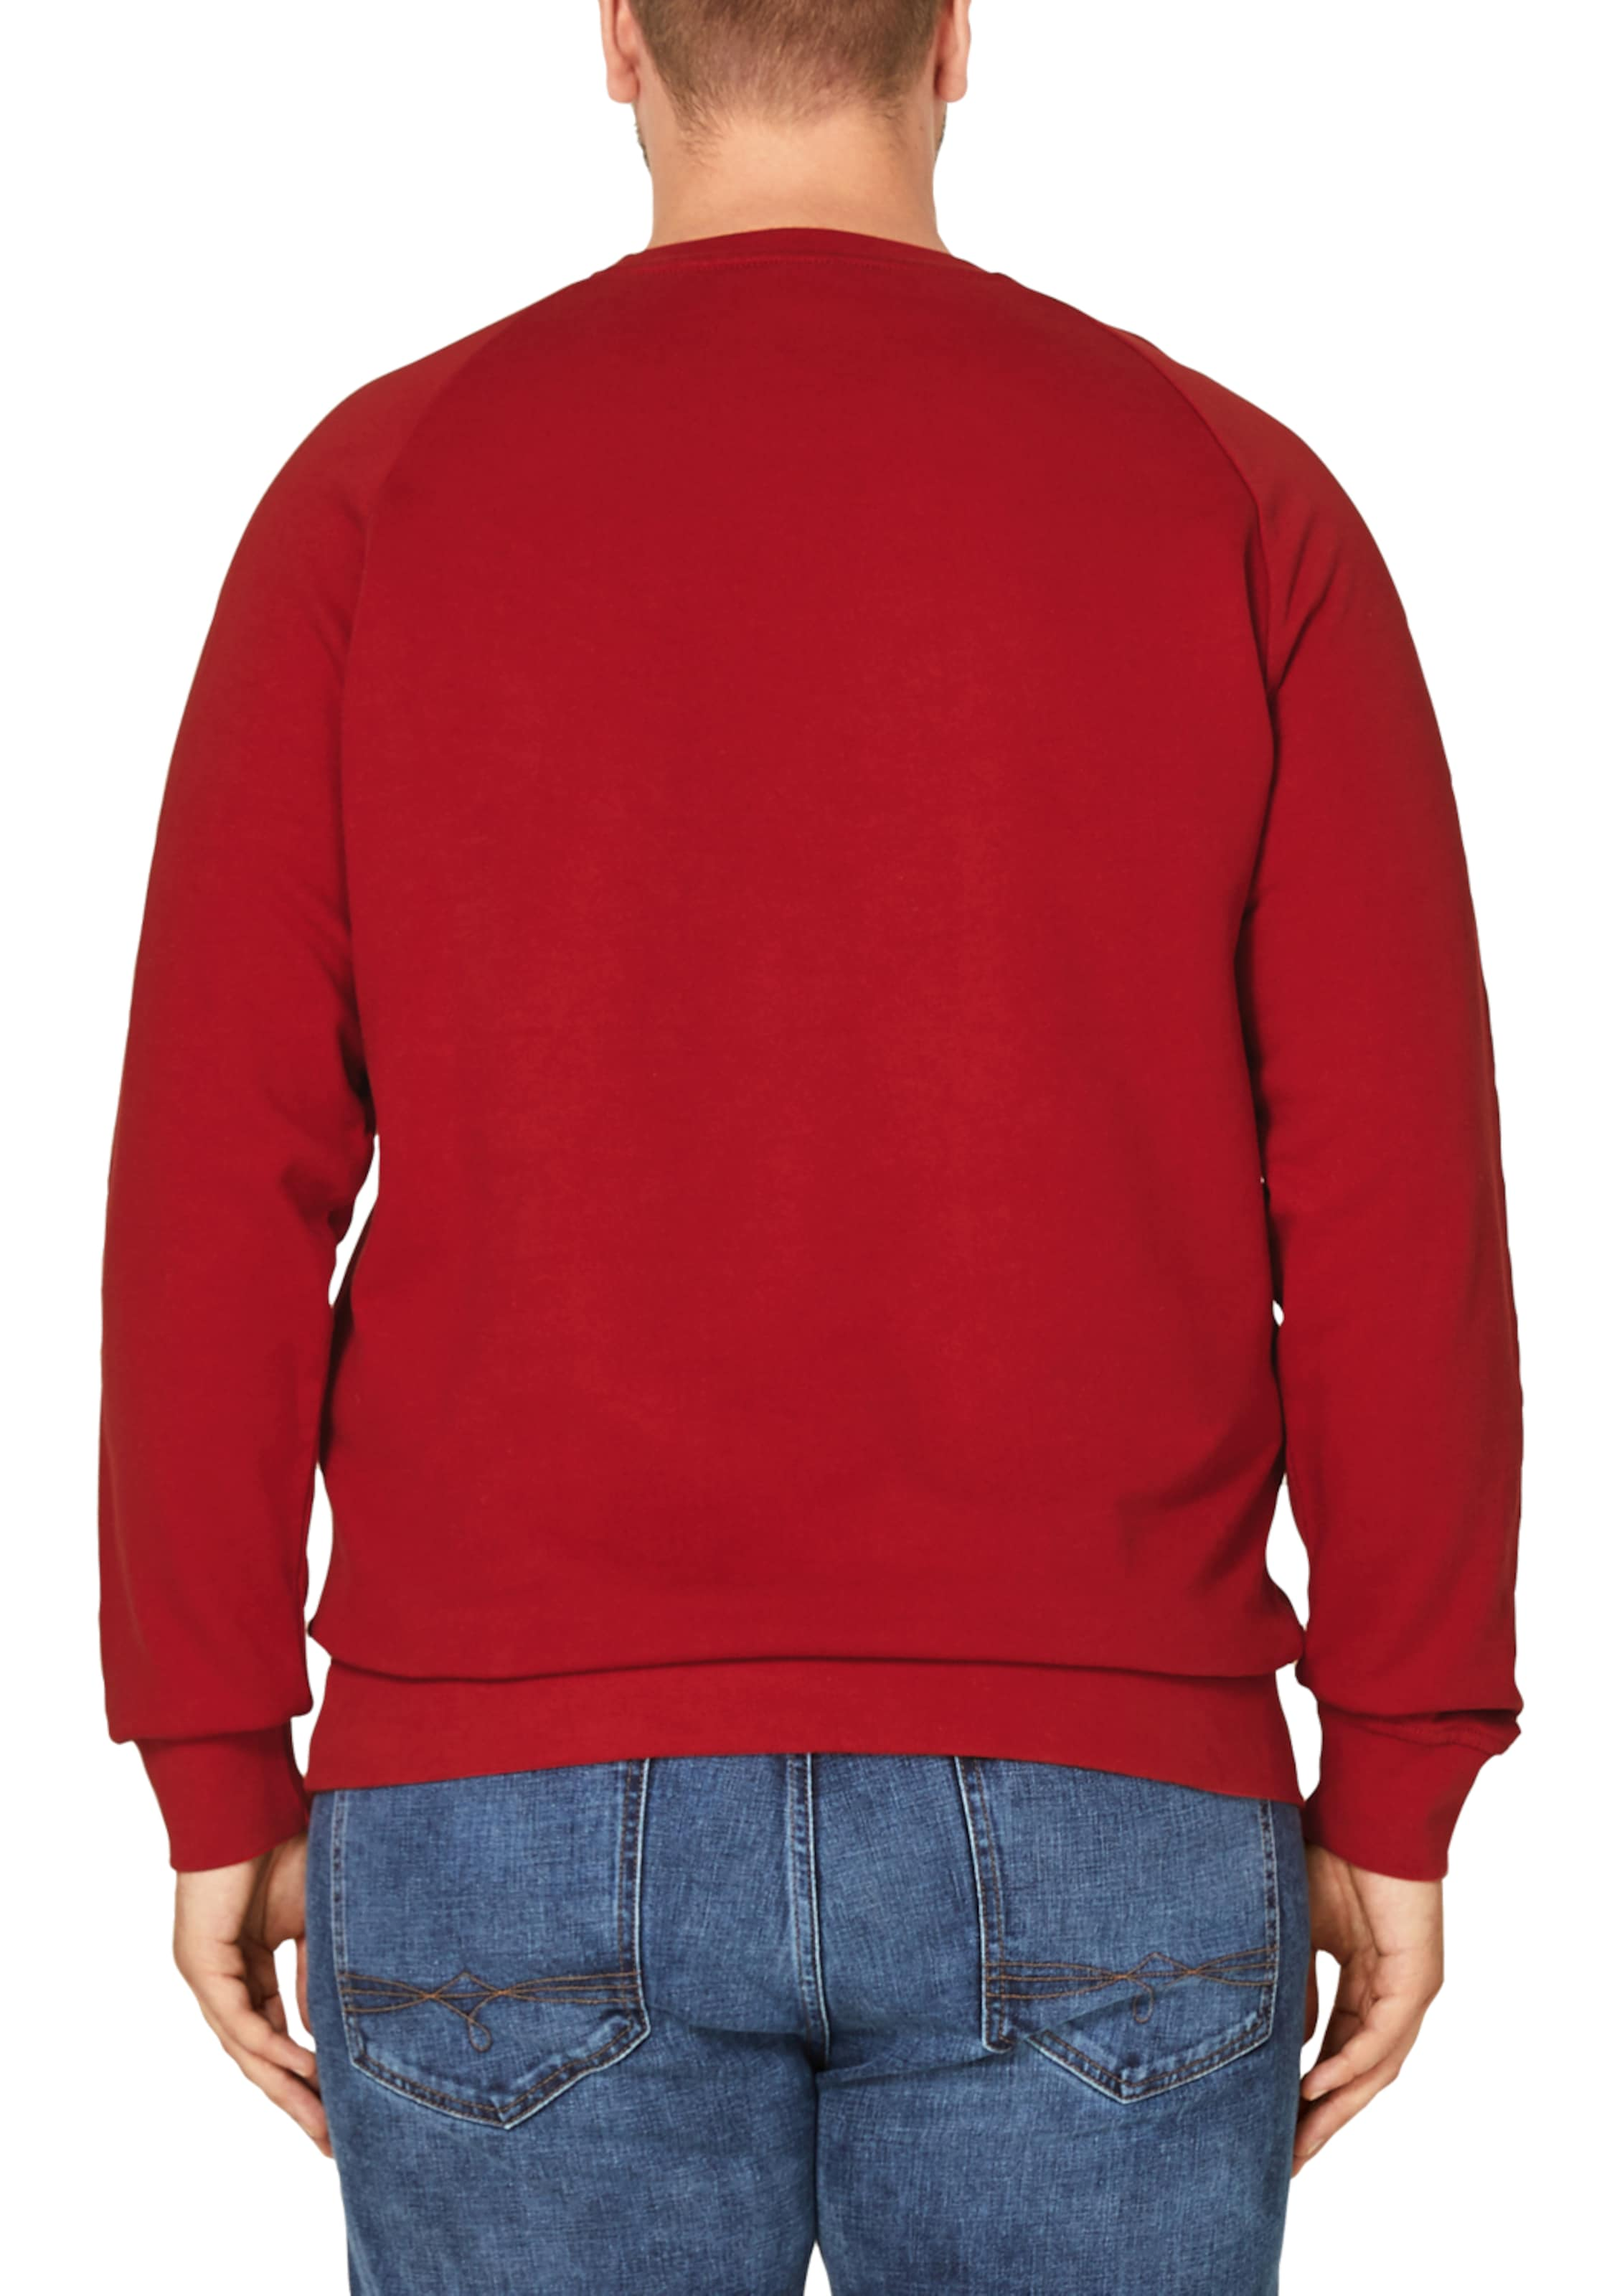 oliver In Rot Sweatshirt Label S Red SUzpVqMG